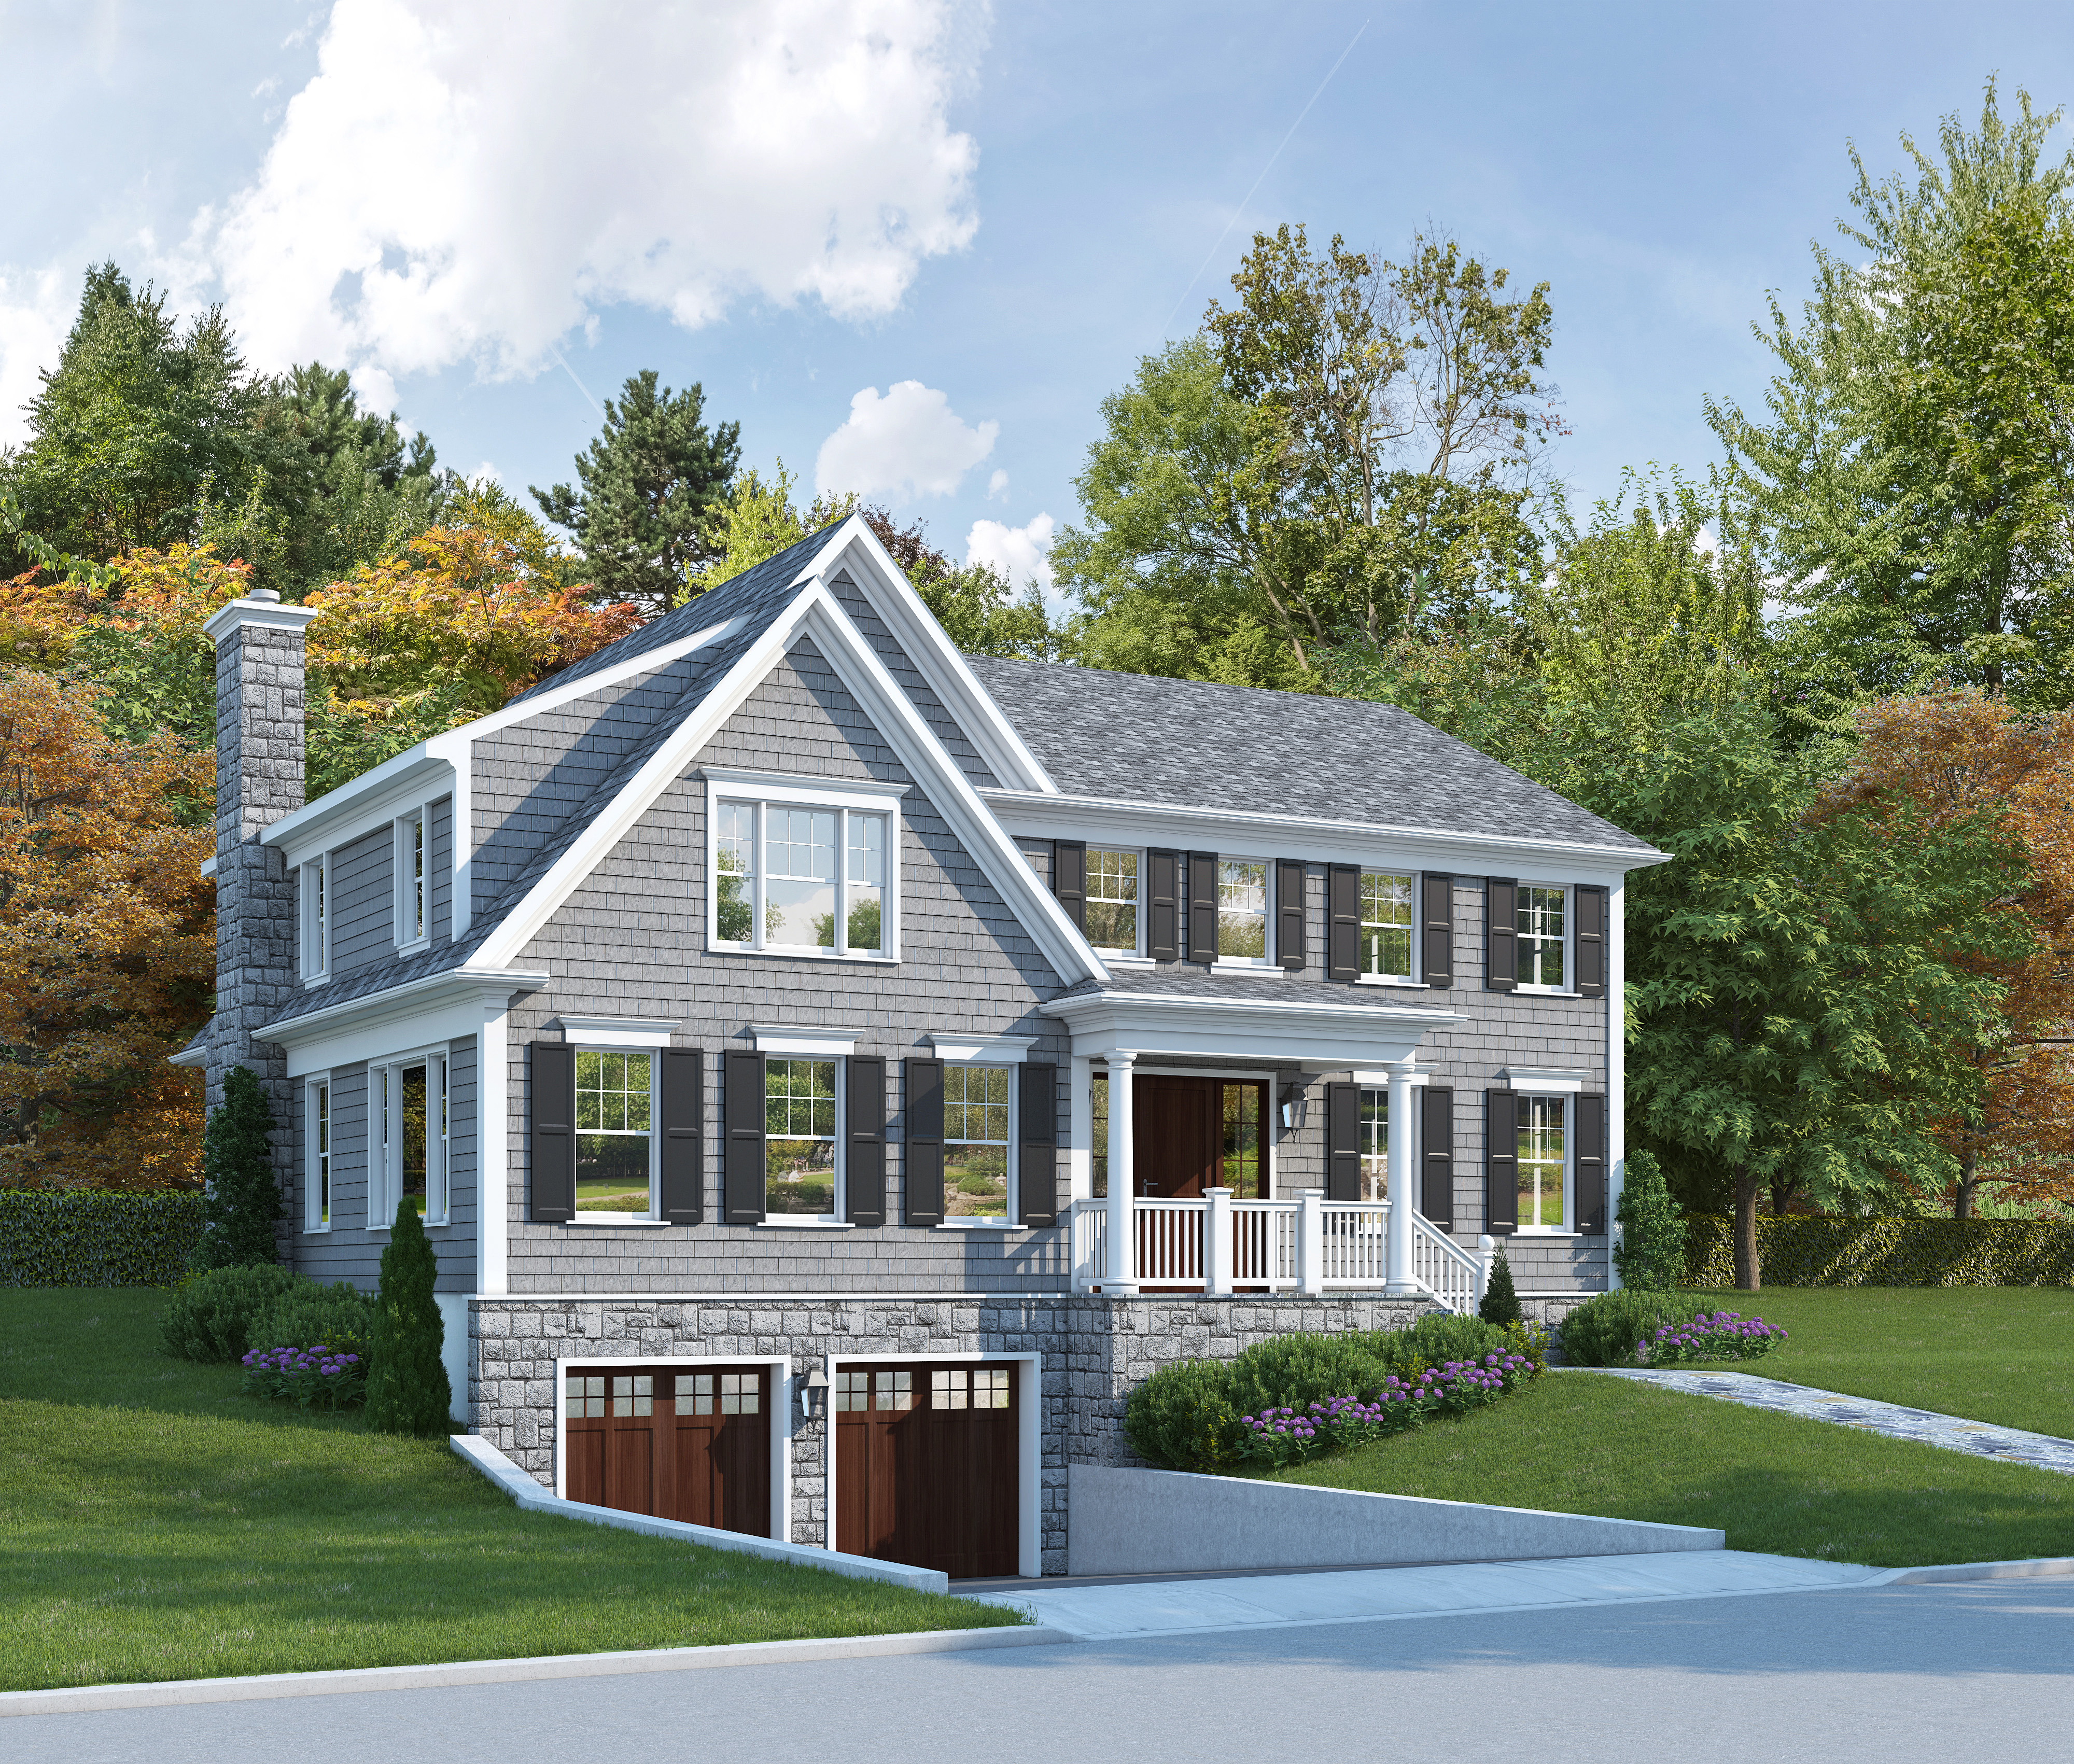 Single Family Home for Sale at 1 Gray Rock Drive Harrison, New York, 10528 United States